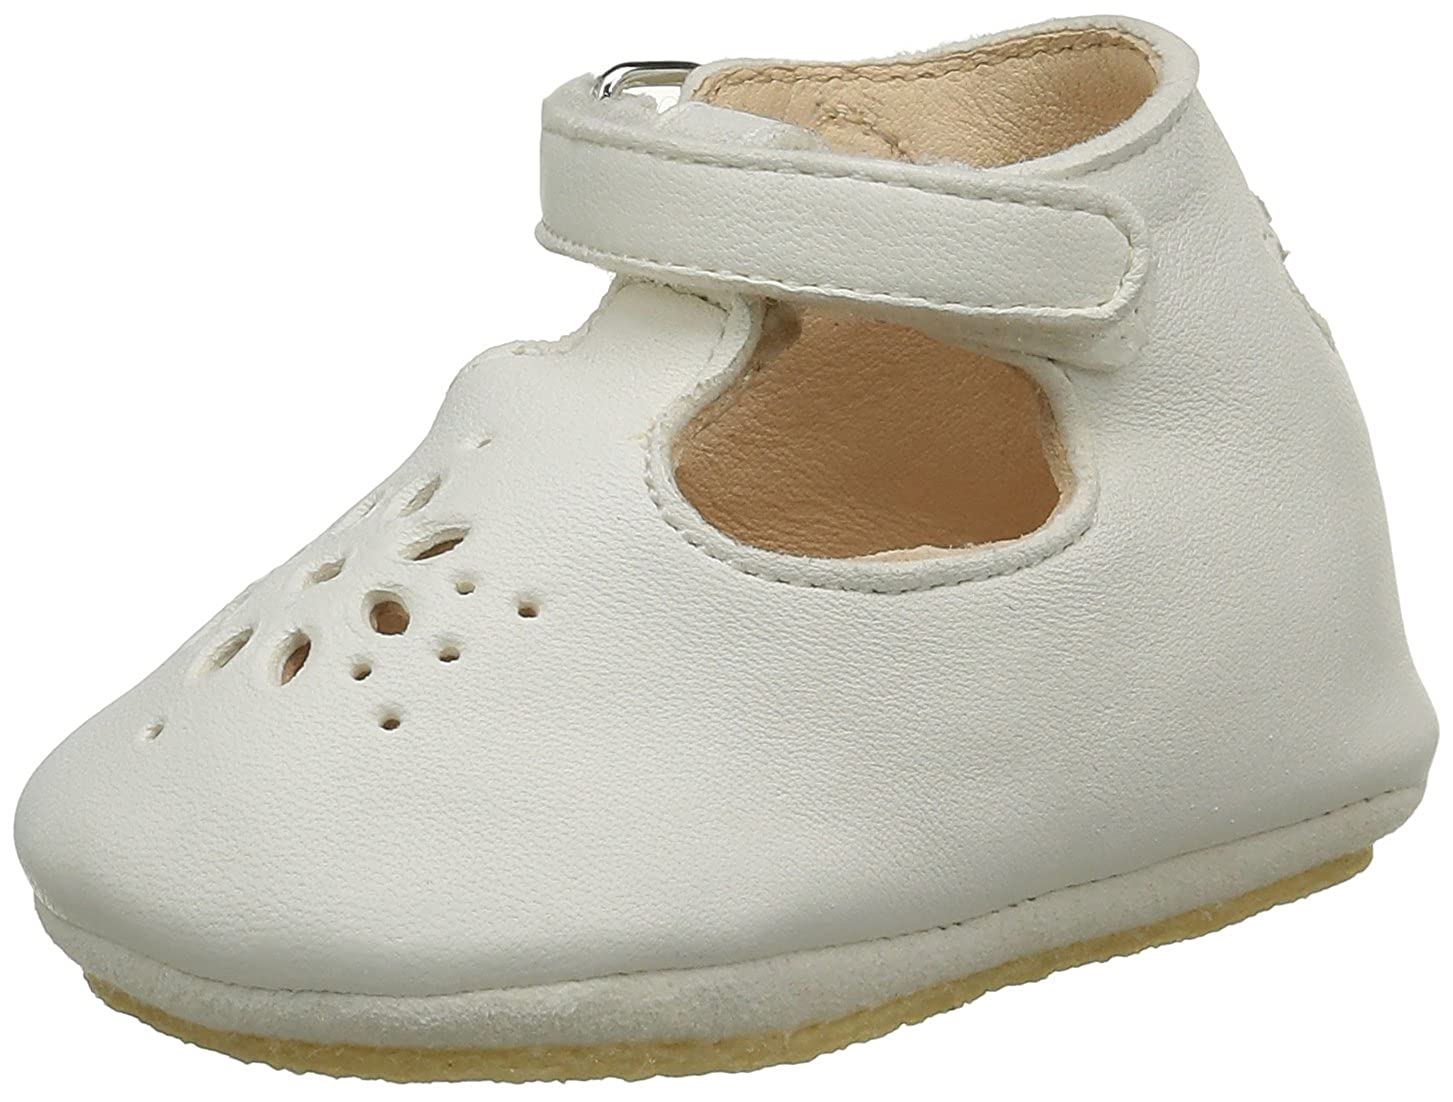 Easy Peasy Lillyp, Unisex Babies' Babyshoes and Slippers Unisex Babies' Babyshoes and Slippers